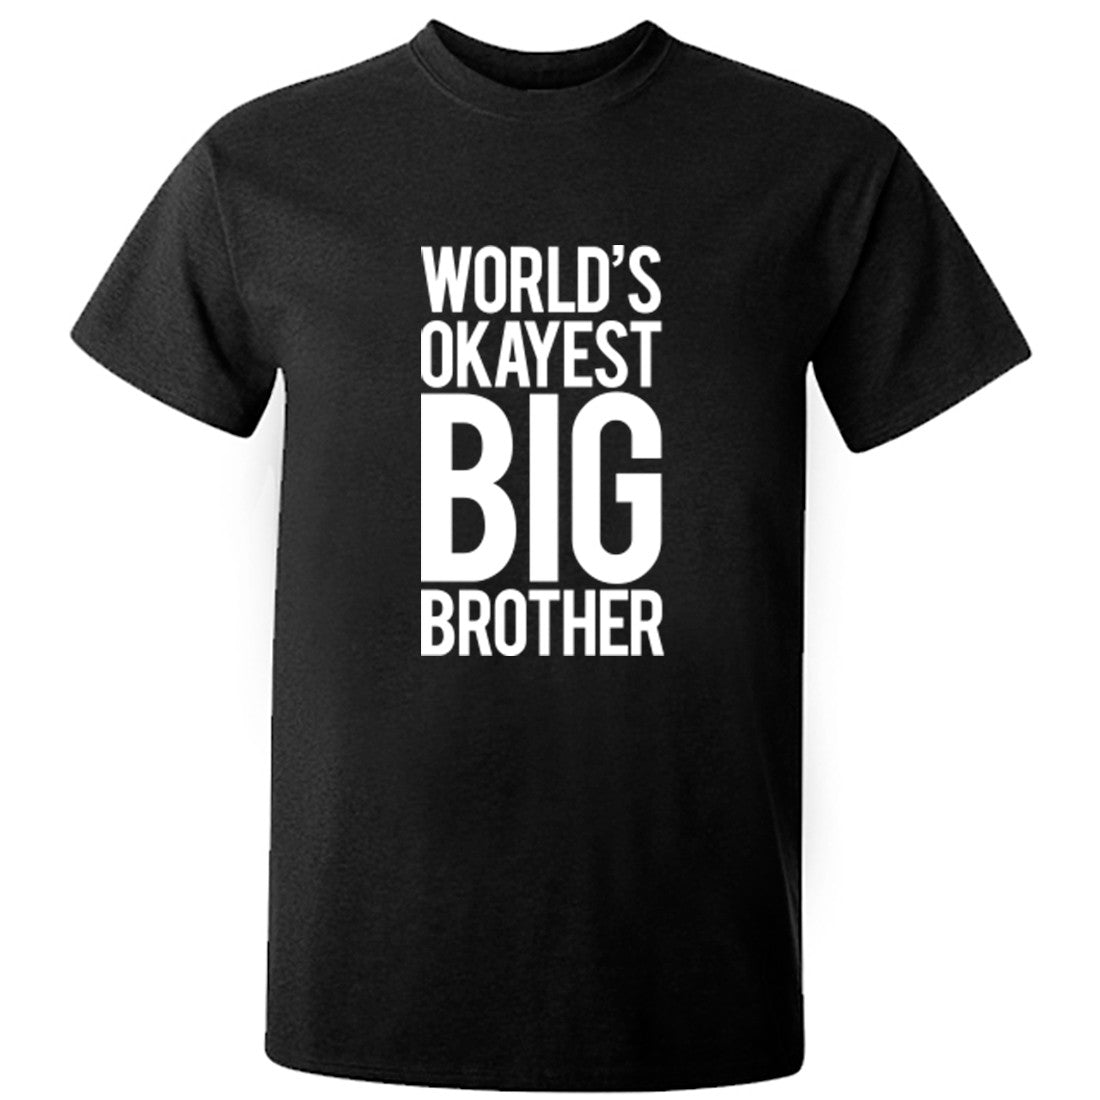 World's Okayest Big Brother unisex t-shirt K0242